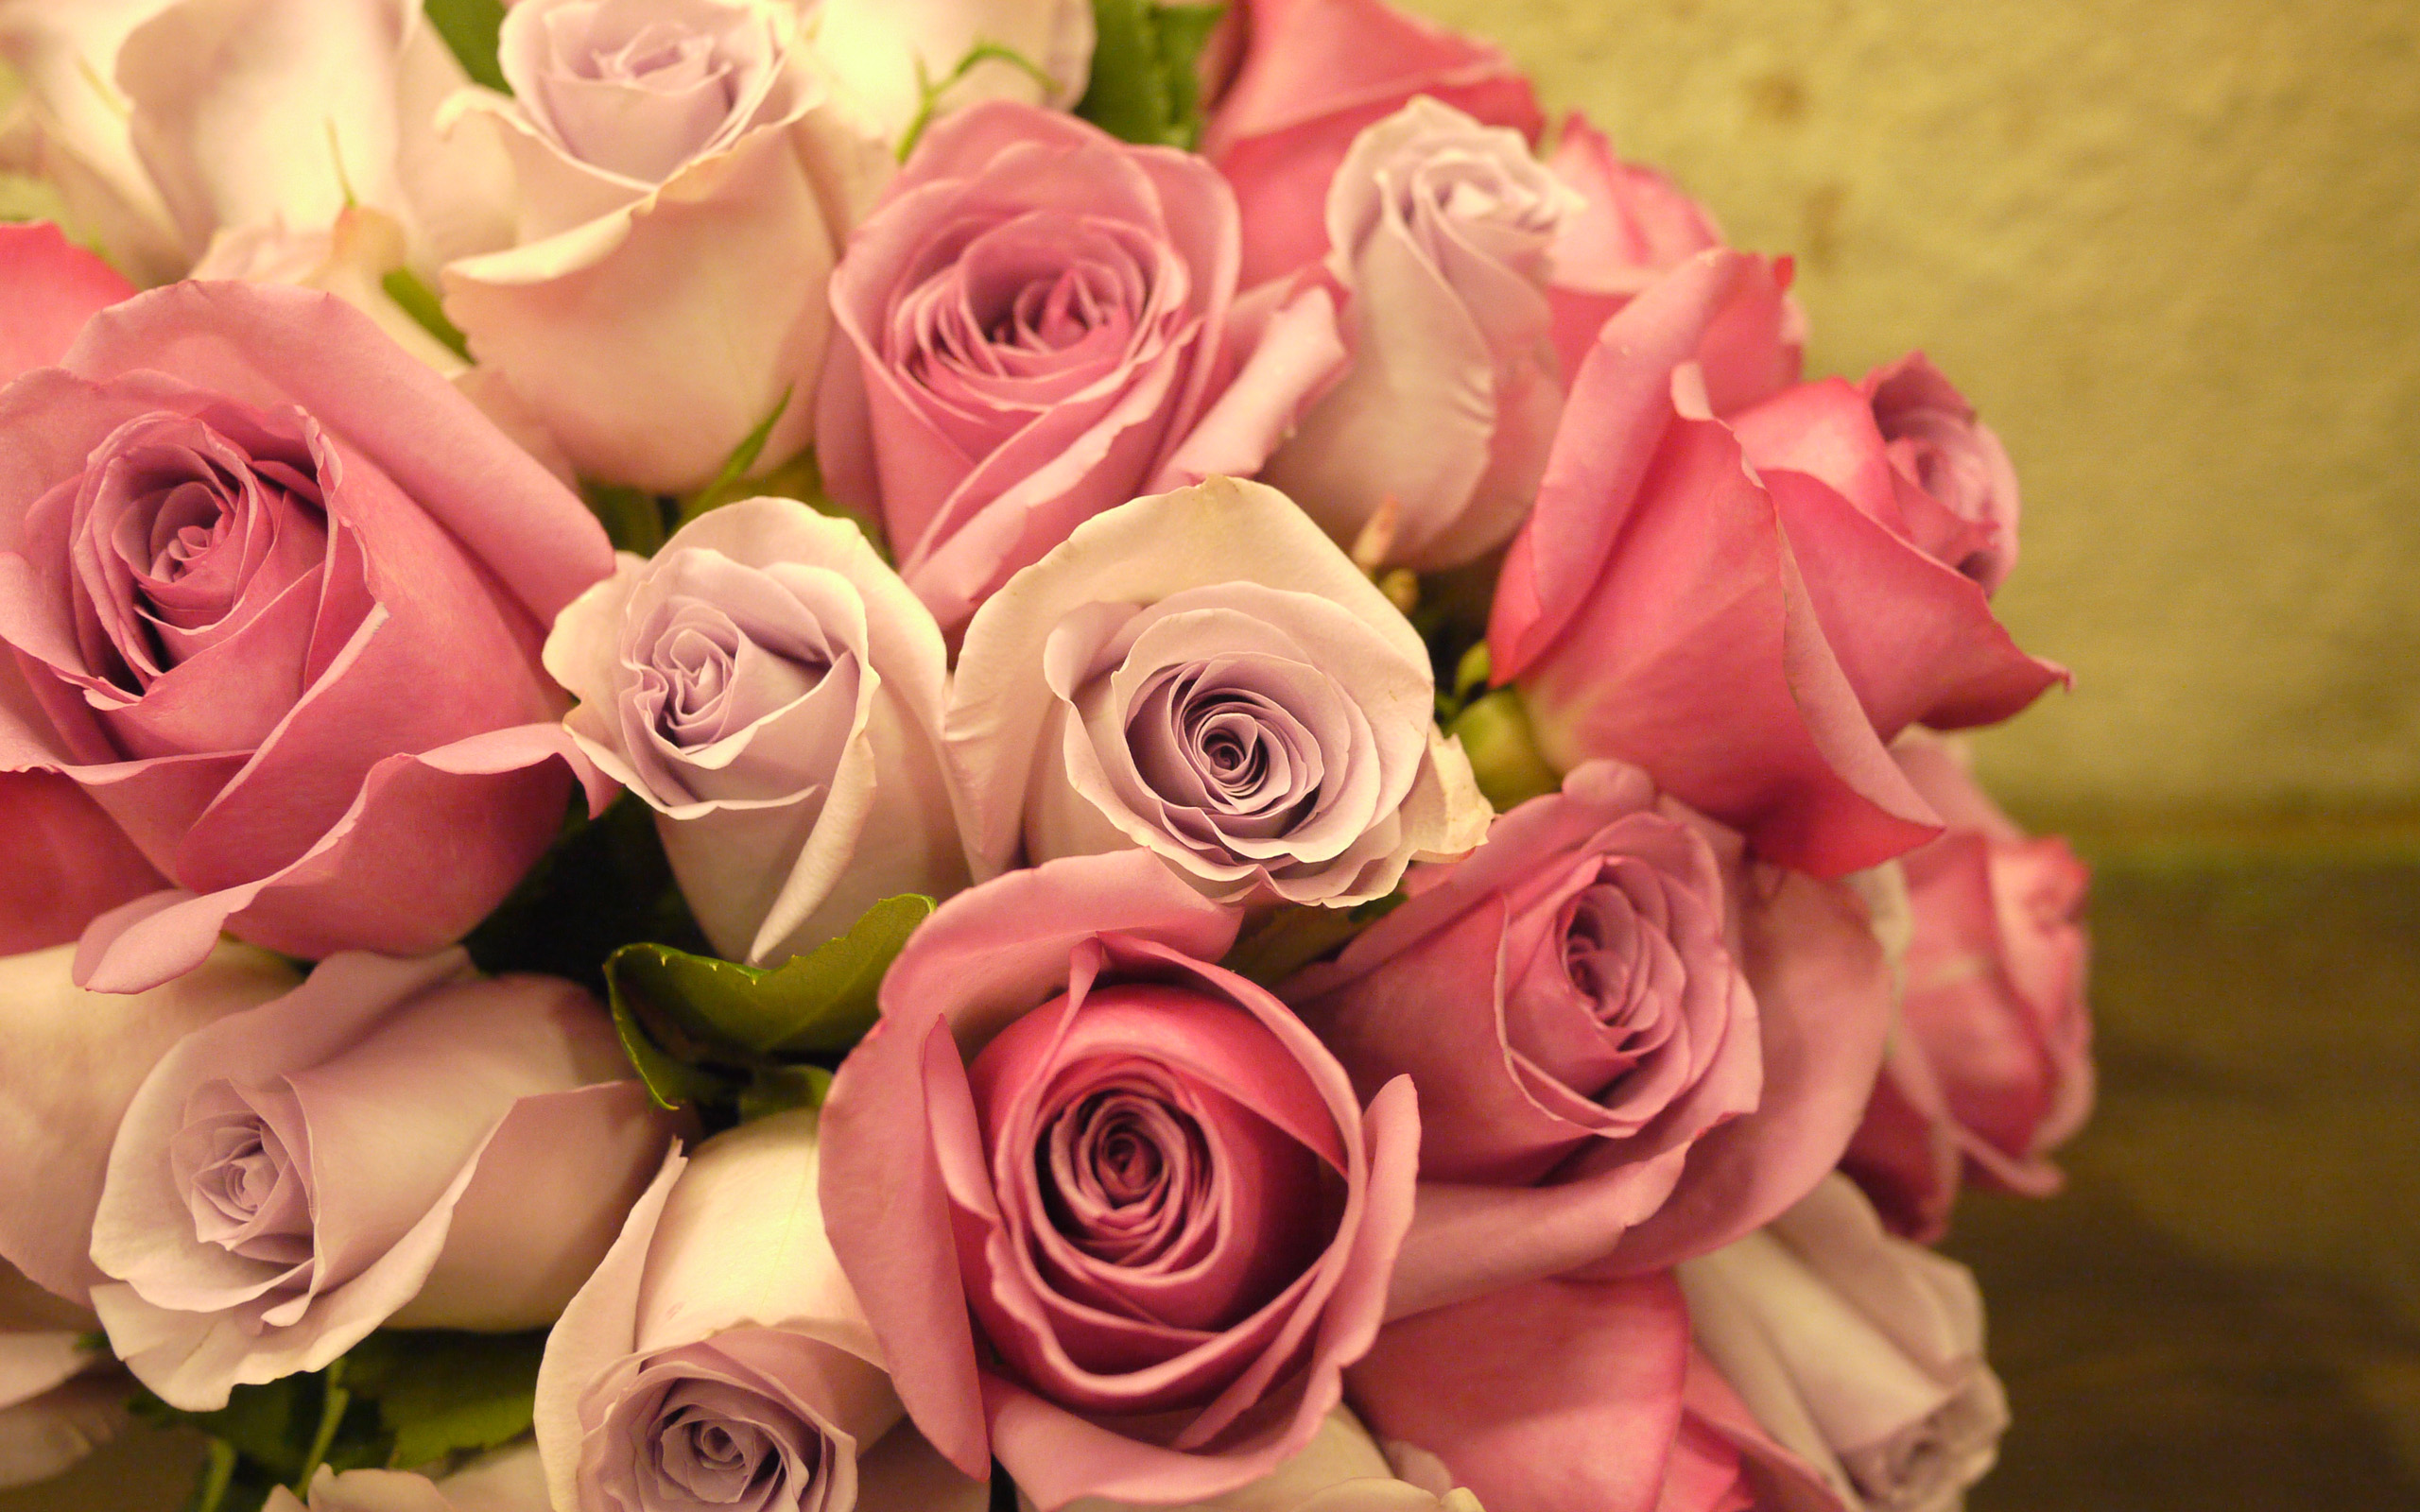 Rose full hd wallpaper and background image 2560x1600 id 443288 - Ramos de flores hermosas ...